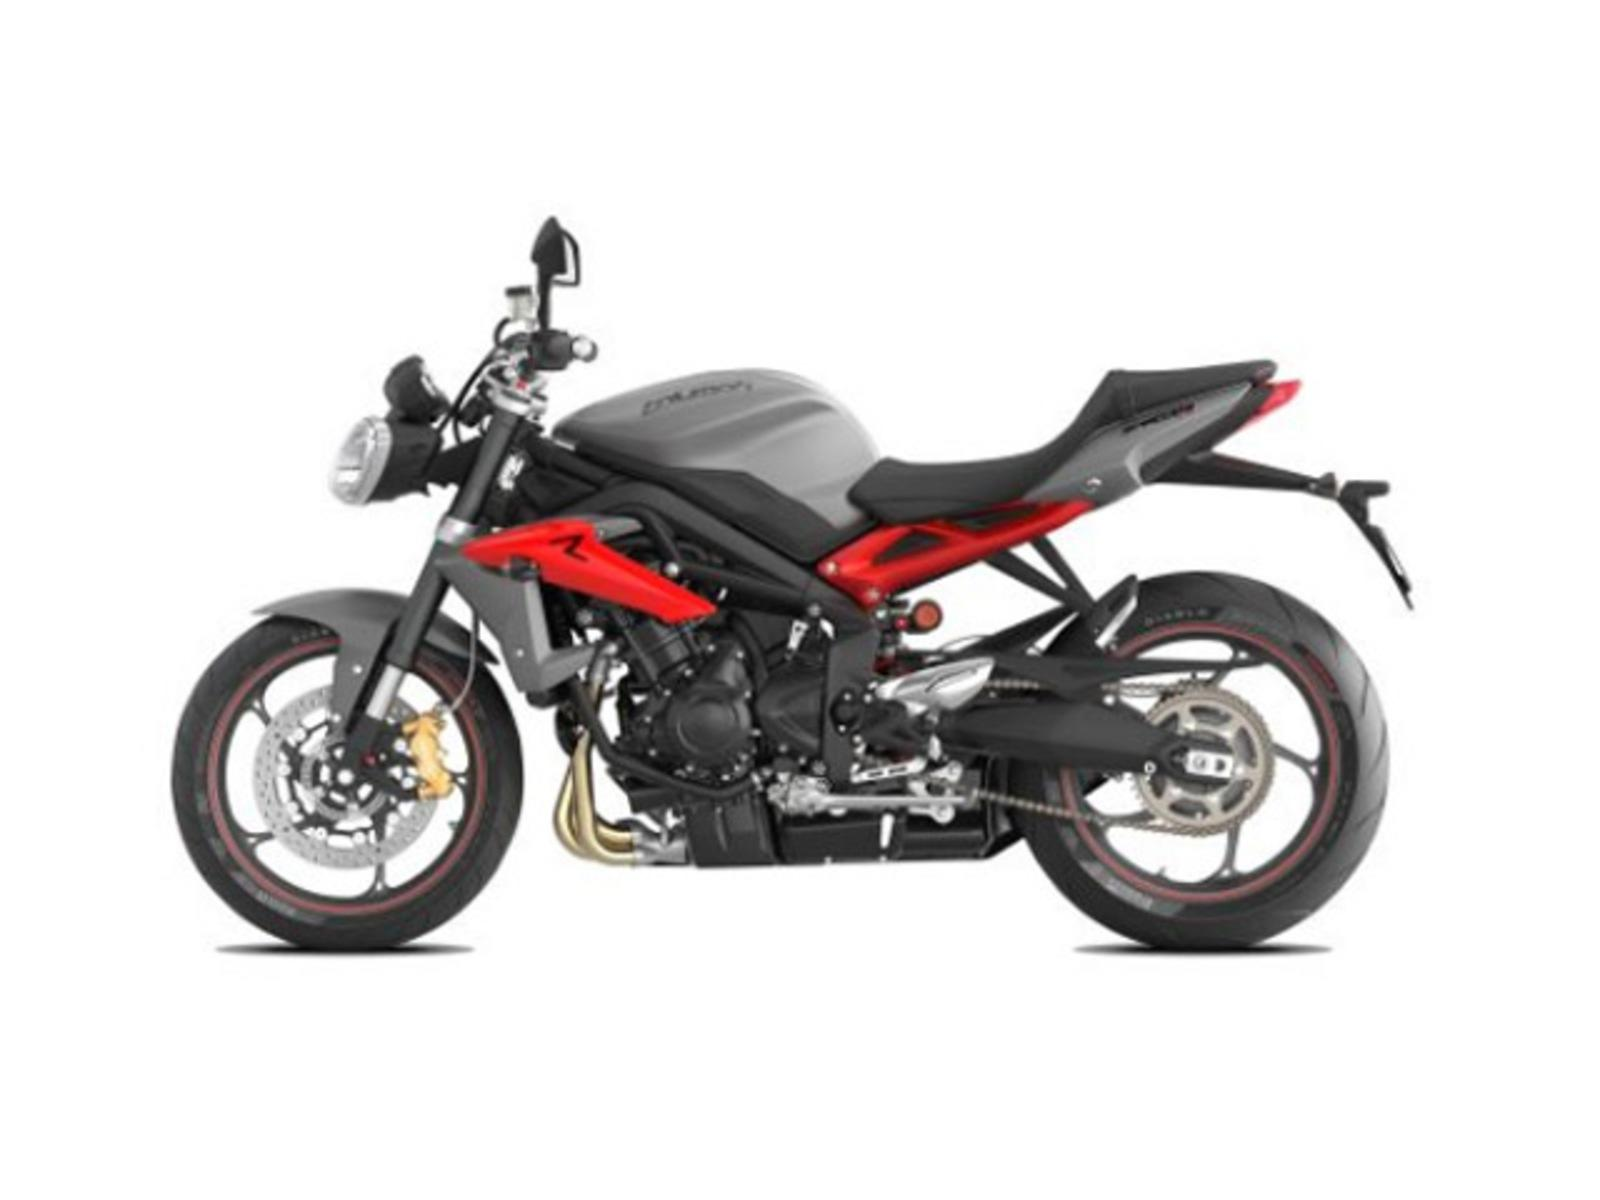 2014 triumph street triple r abs review gallery top speed. Black Bedroom Furniture Sets. Home Design Ideas